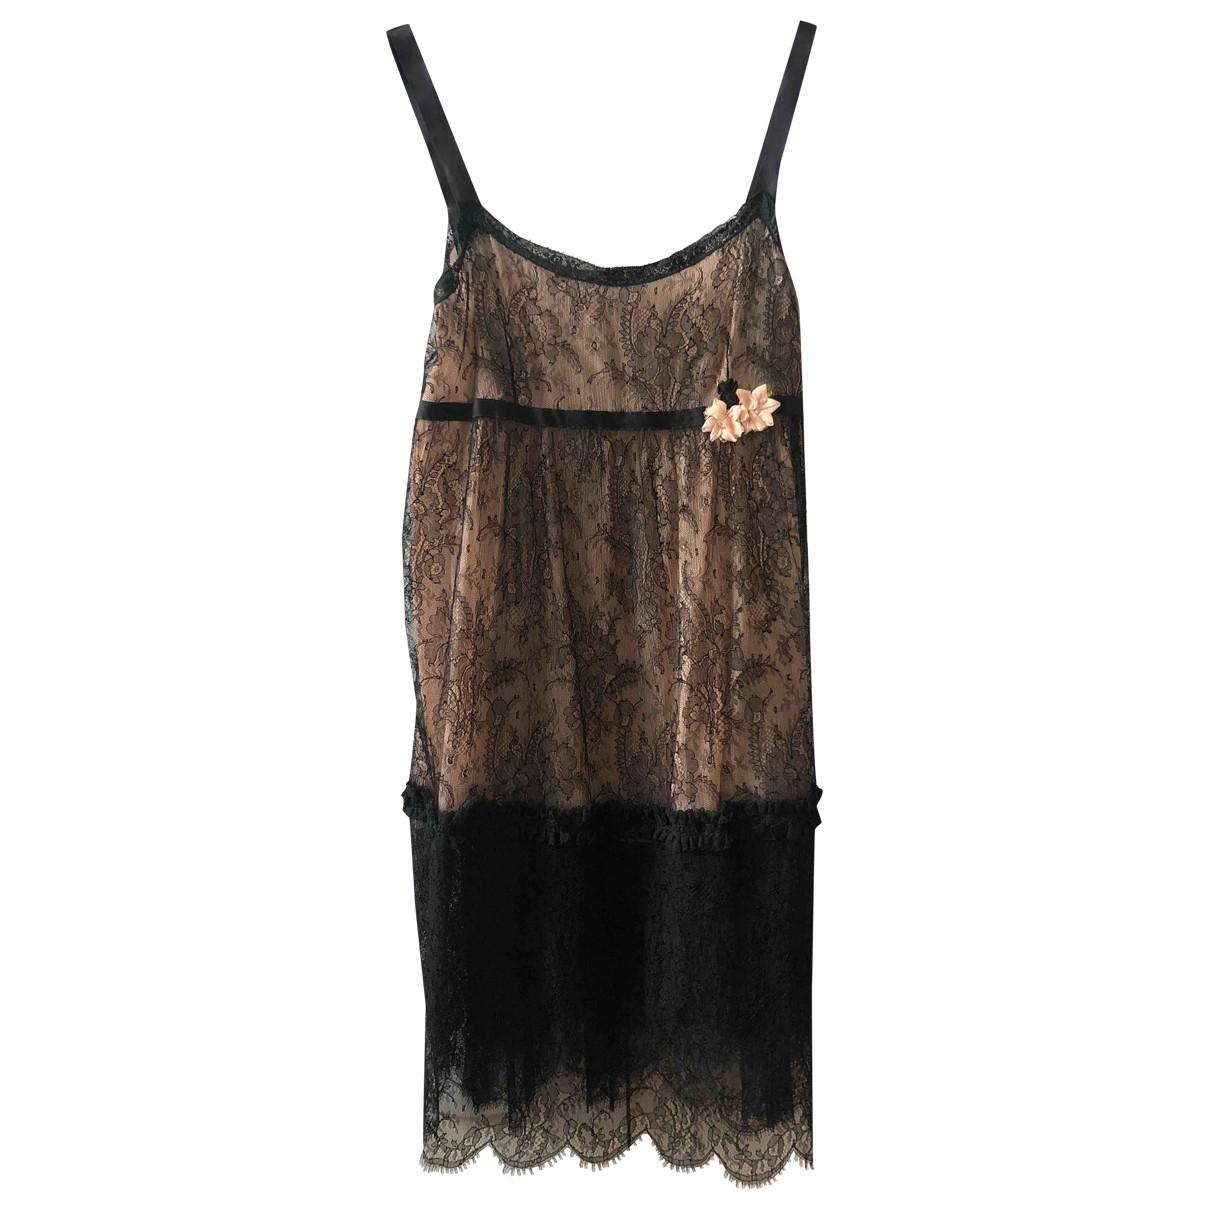 Anna Molinari \N Black Lace dress for Women 42 IT